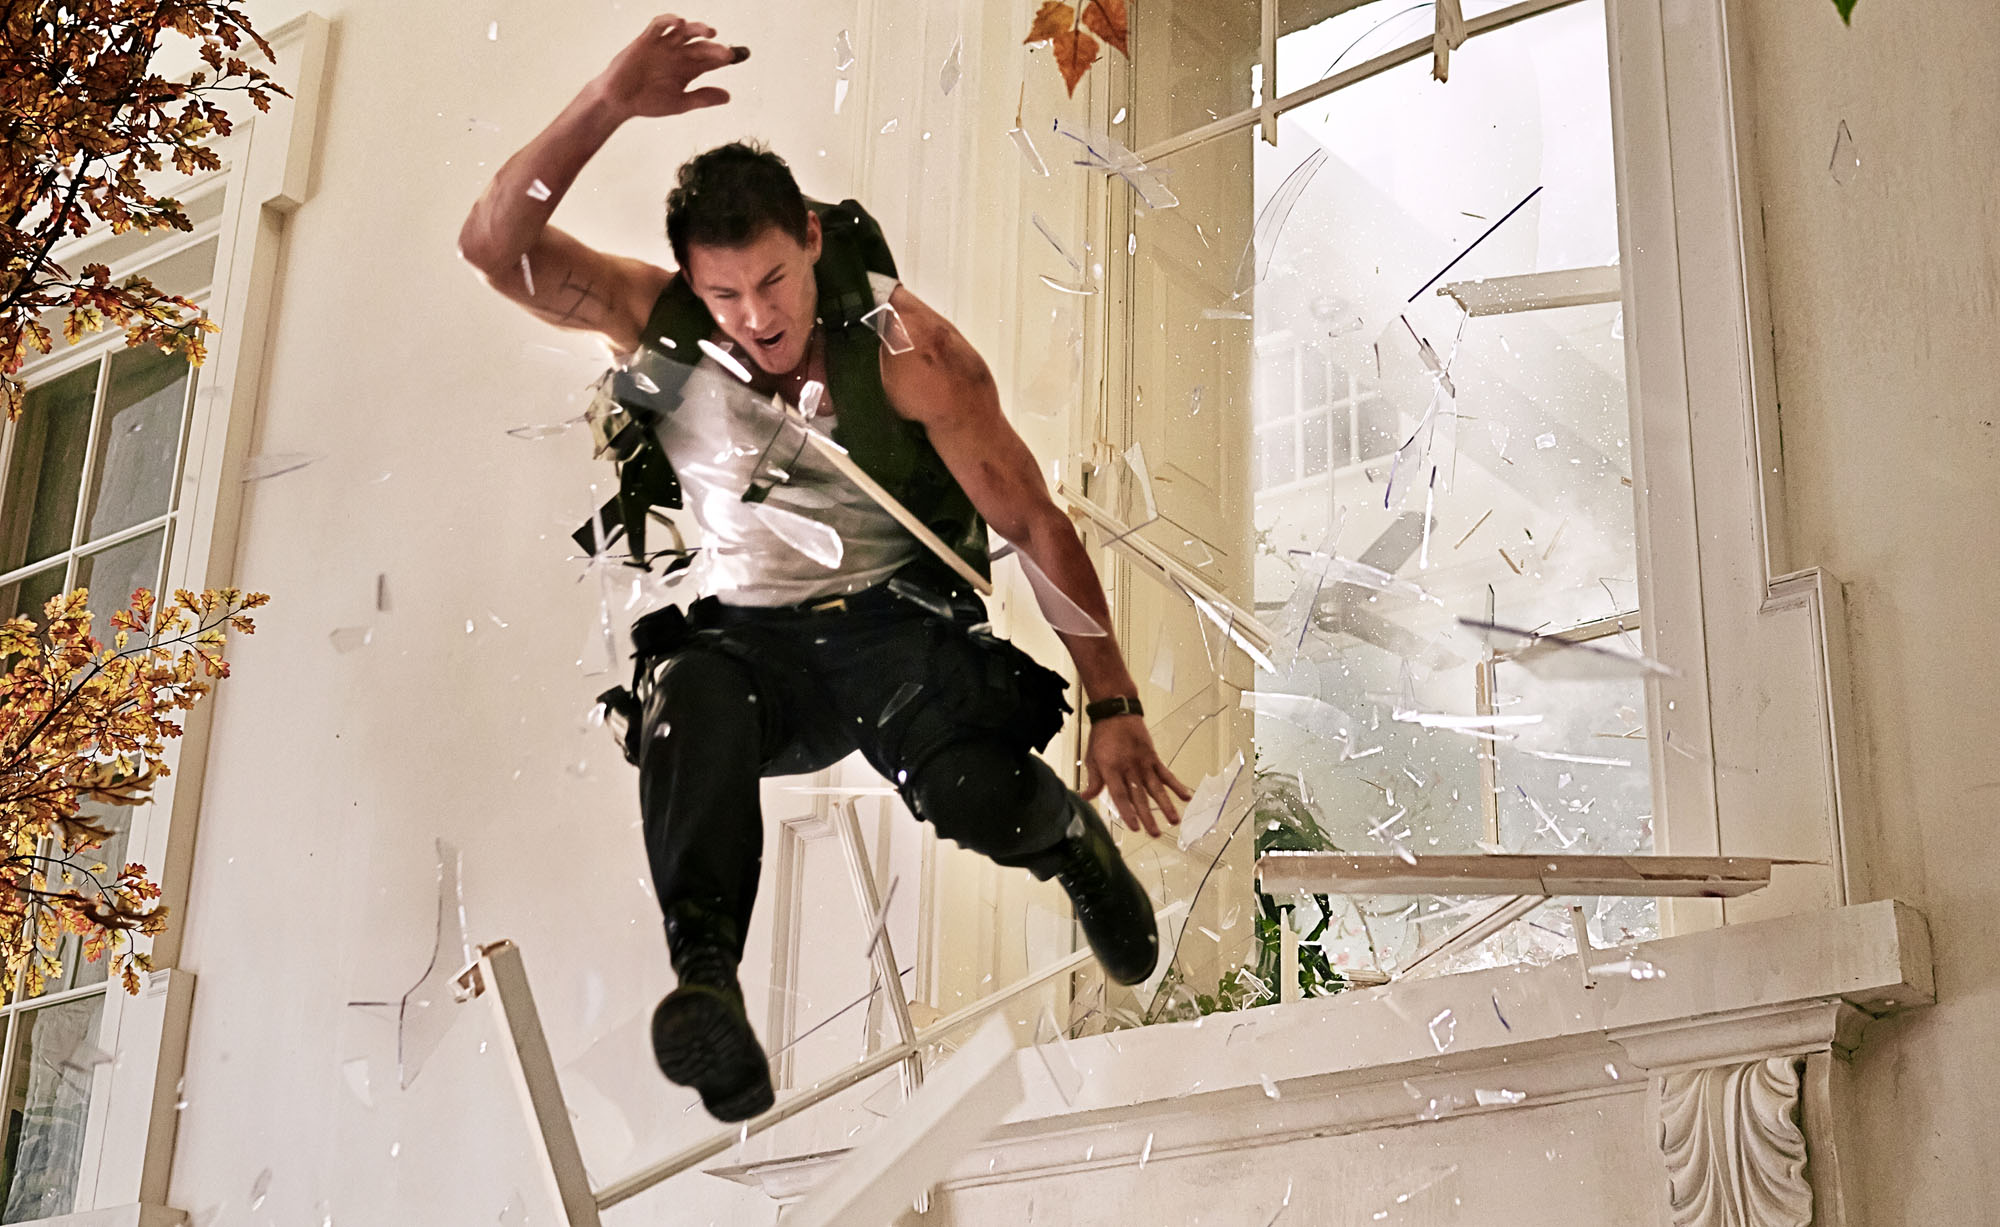 Trailer Breakdown: White House Down Sets Itself Up To Be One of the Biggest and Best Blockbusters of the Summer